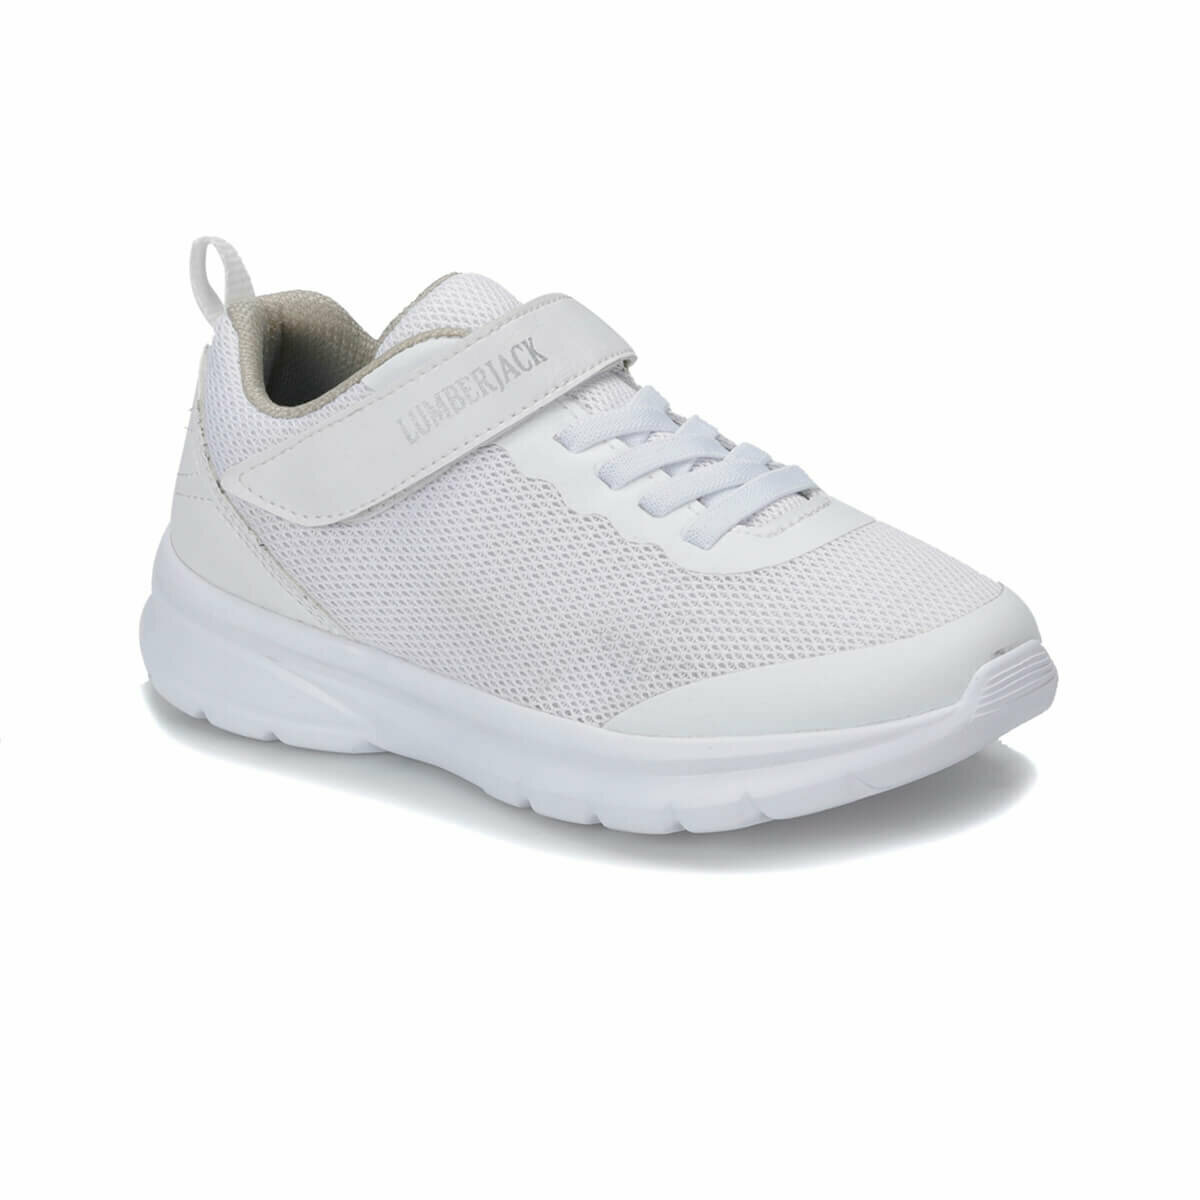 FLO RUN White Female Child Walking Shoes LUMBERJACK